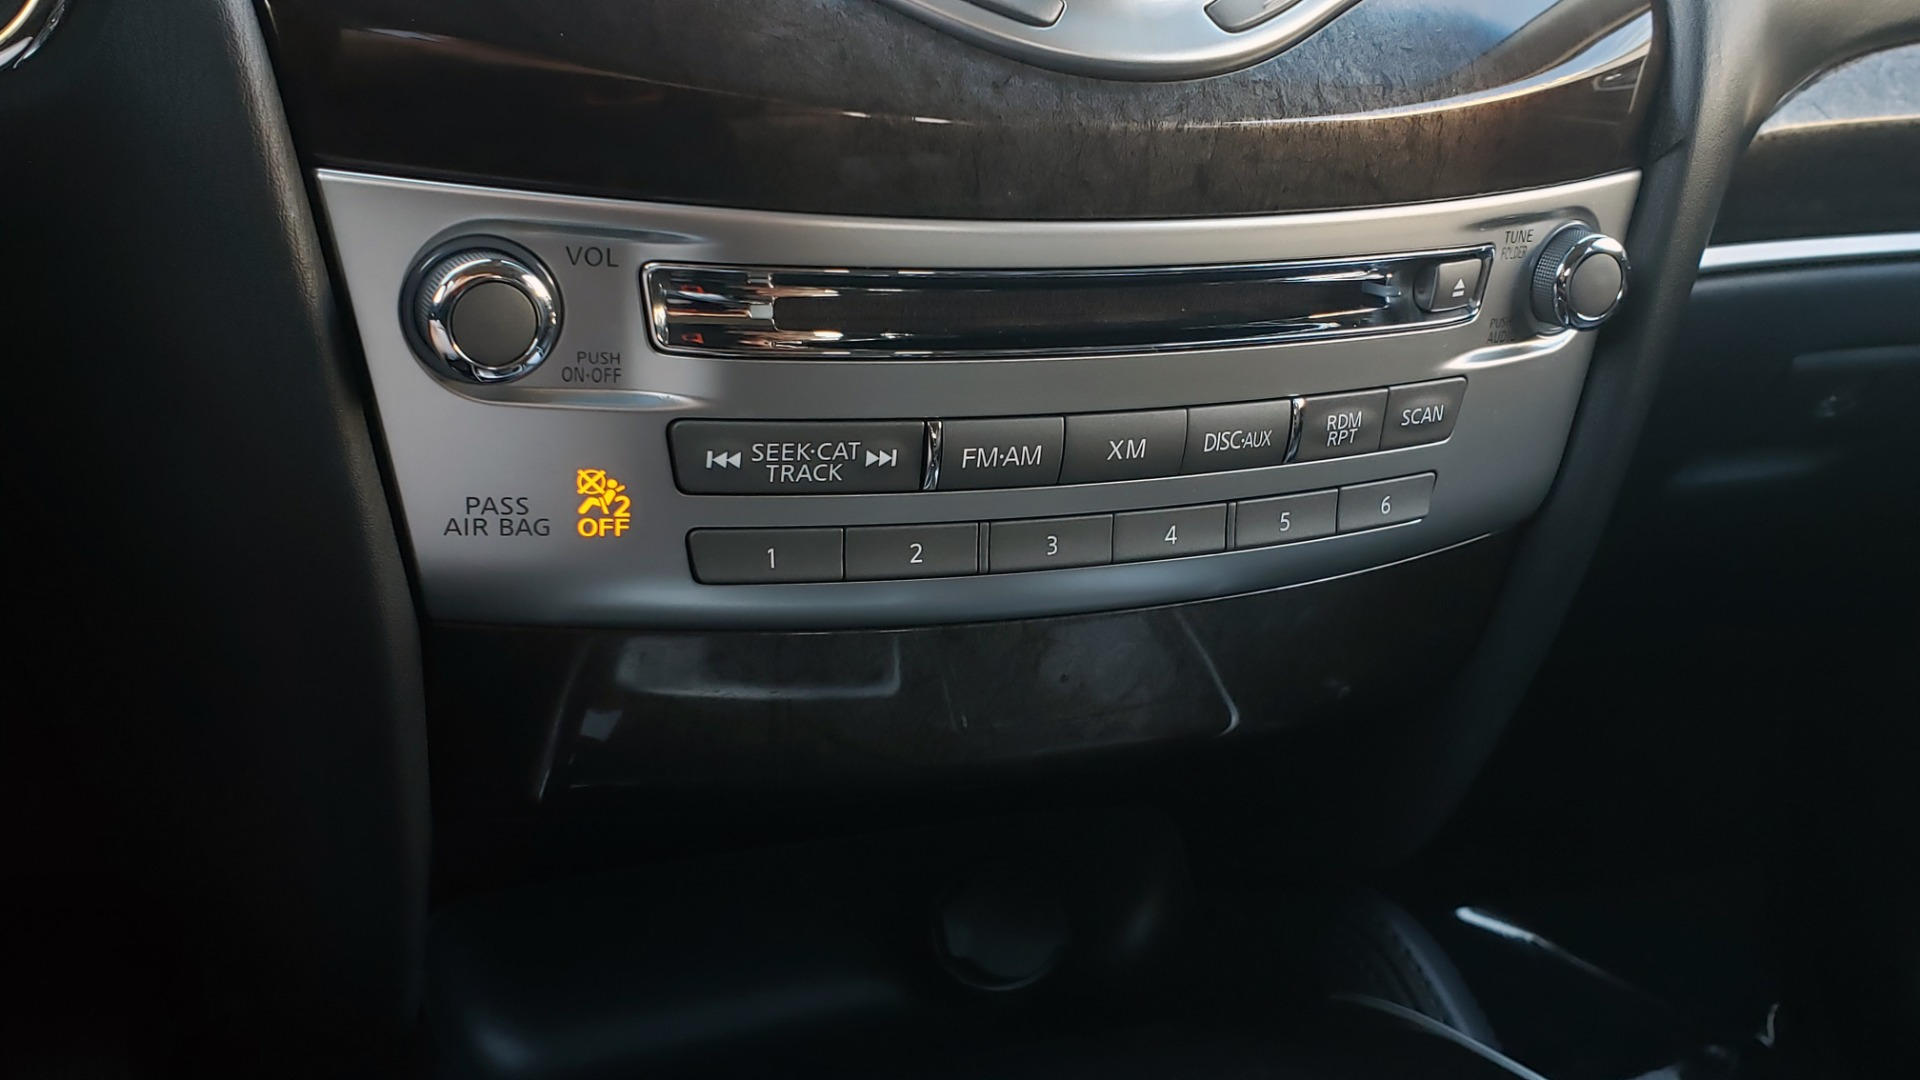 Used 2015 INFINITI QX60 AWD / PREM PLUS PKG / NAV / SUNROOF / BOSE / 3-ROW / REARVIEW for sale $19,695 at Formula Imports in Charlotte NC 28227 48